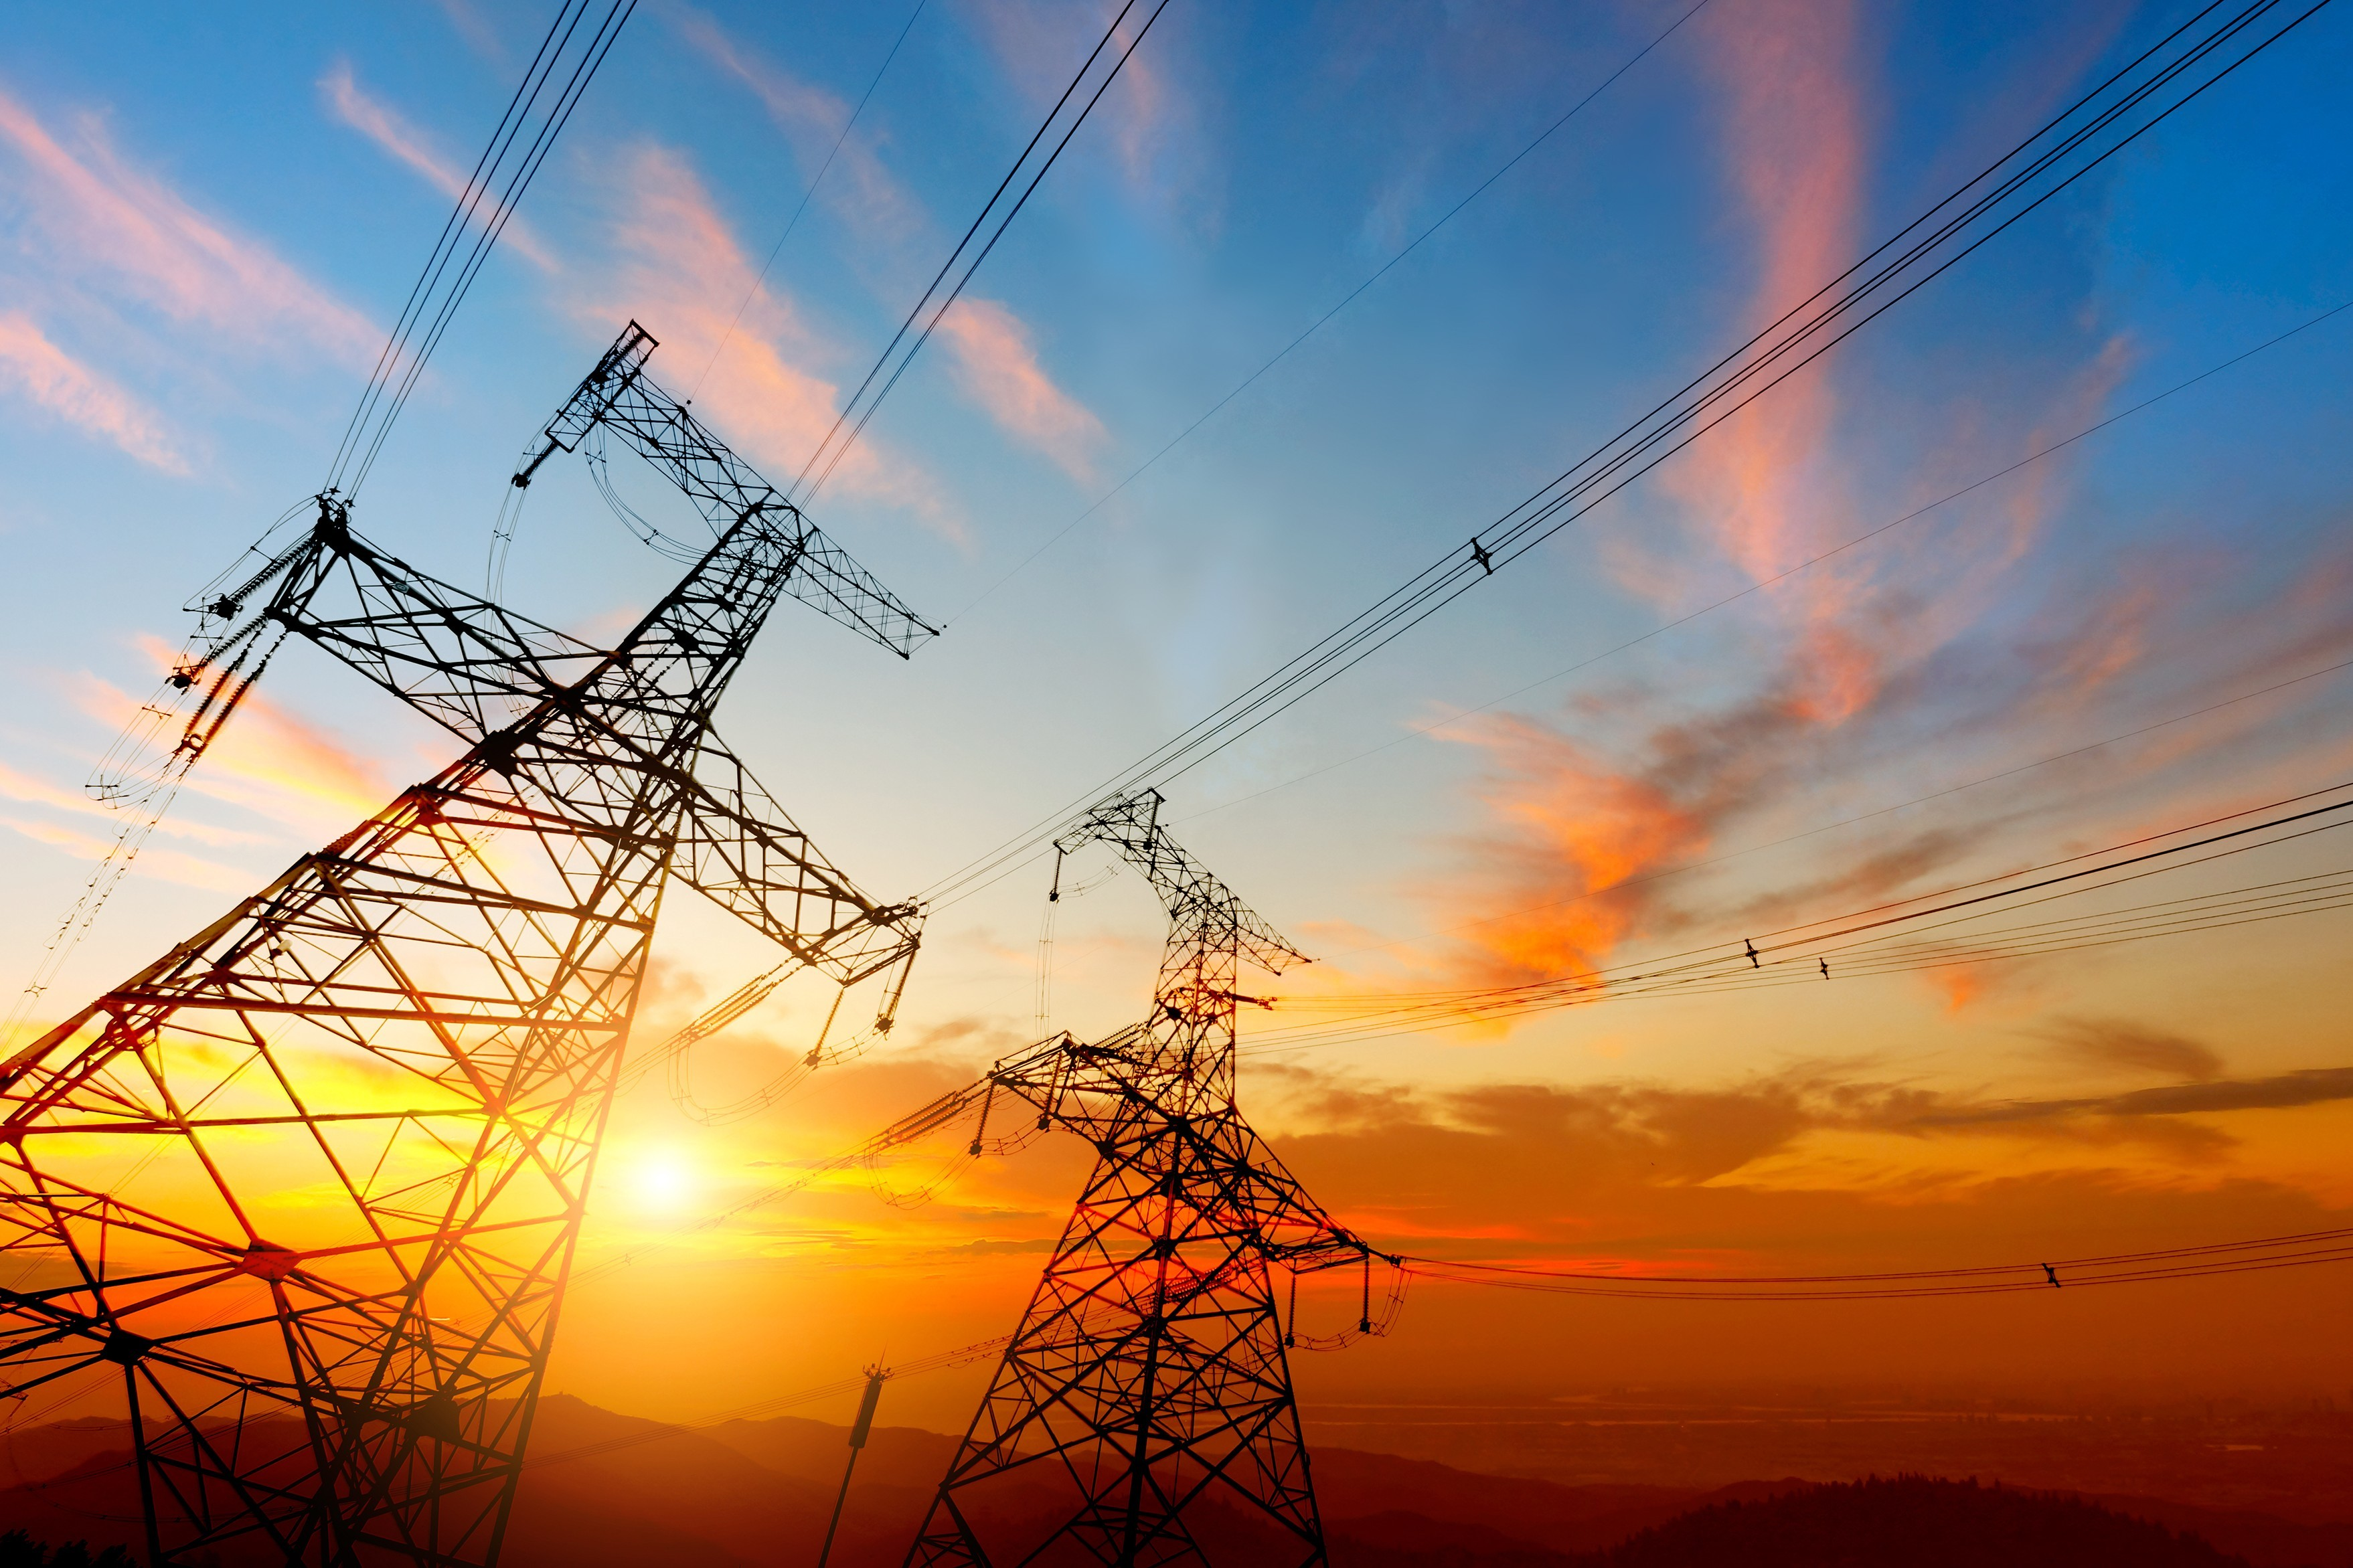 Two Transmission Towers with lines infront of a sunset